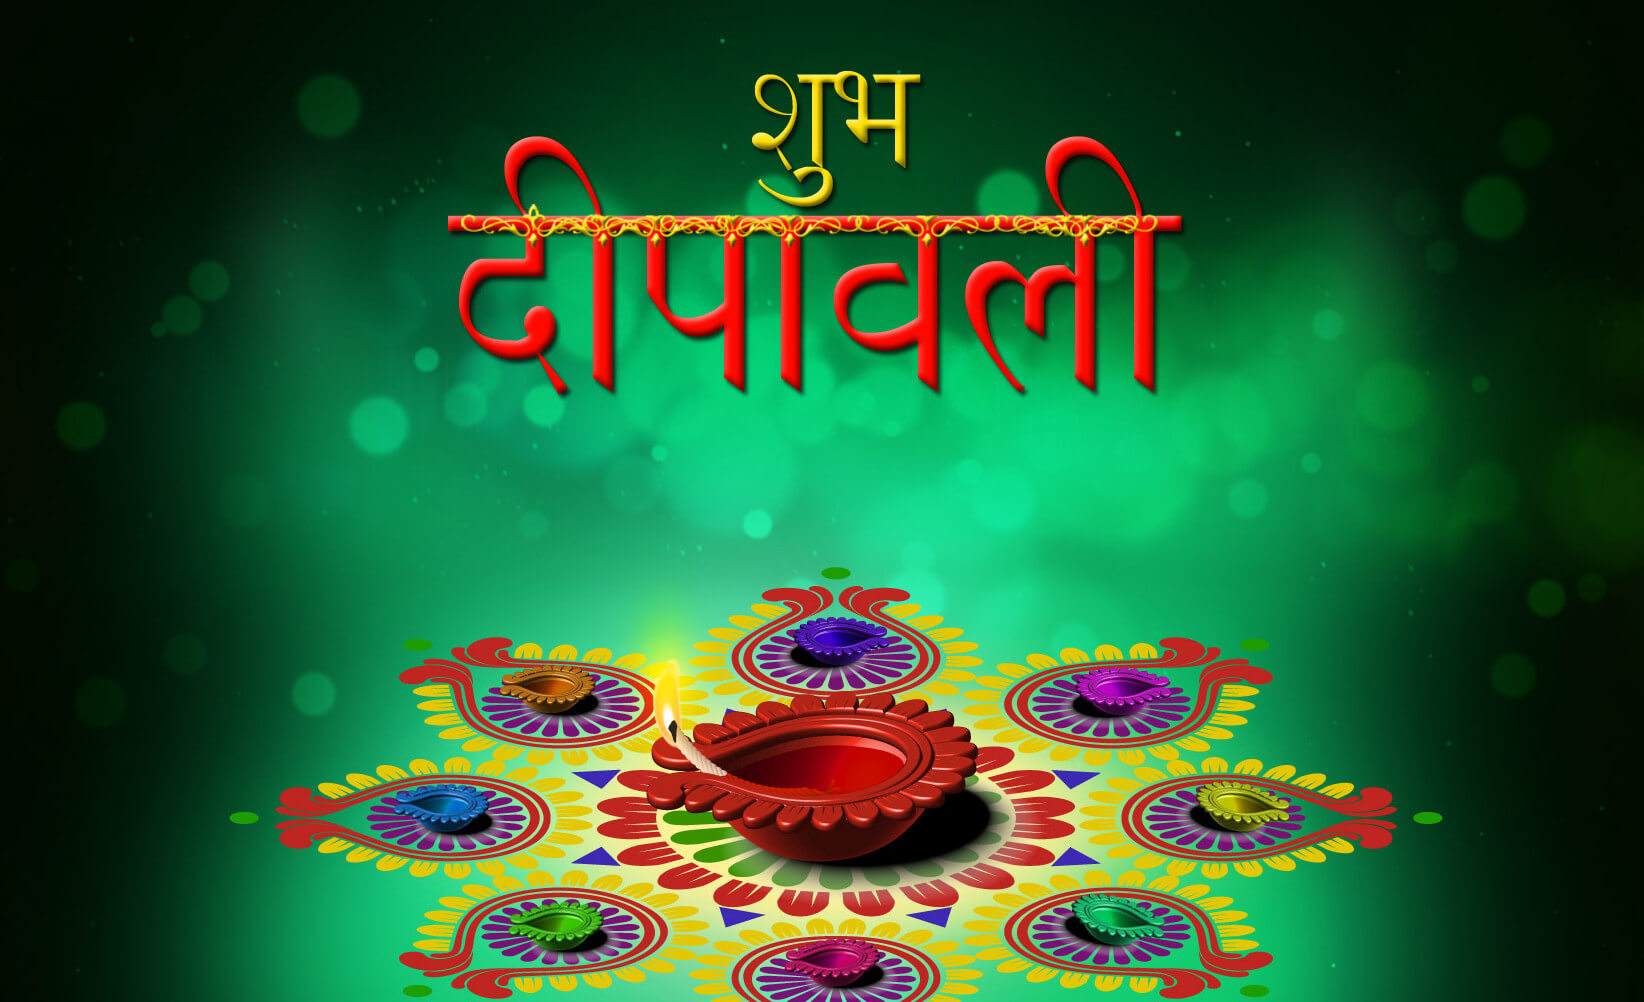 subh diwali 2017 greeting card wallpaper image